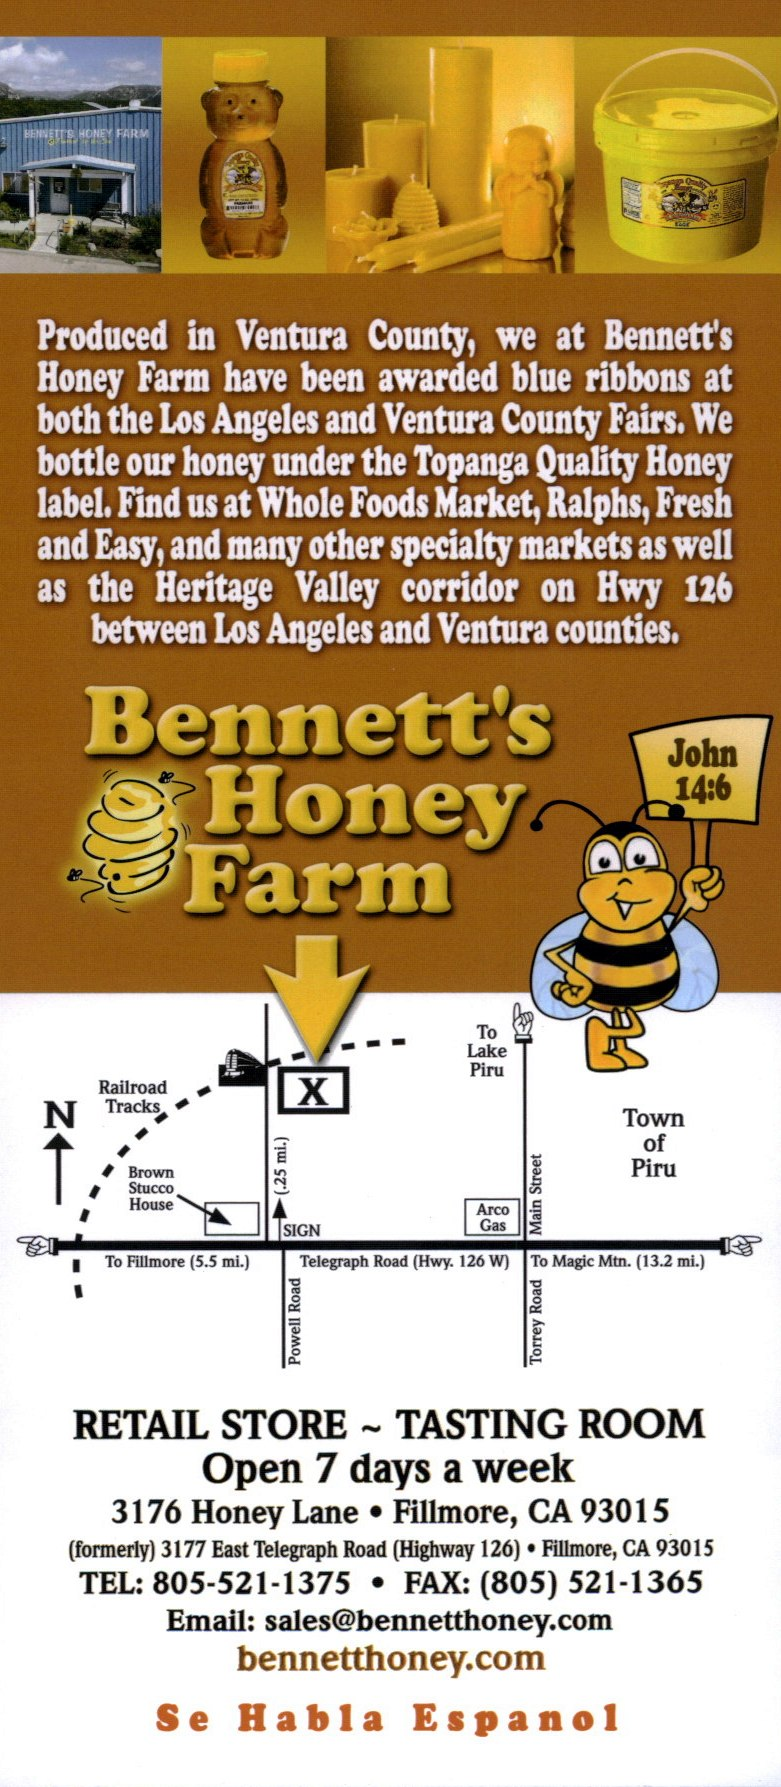 Bennett's Honey Farm brochure full size